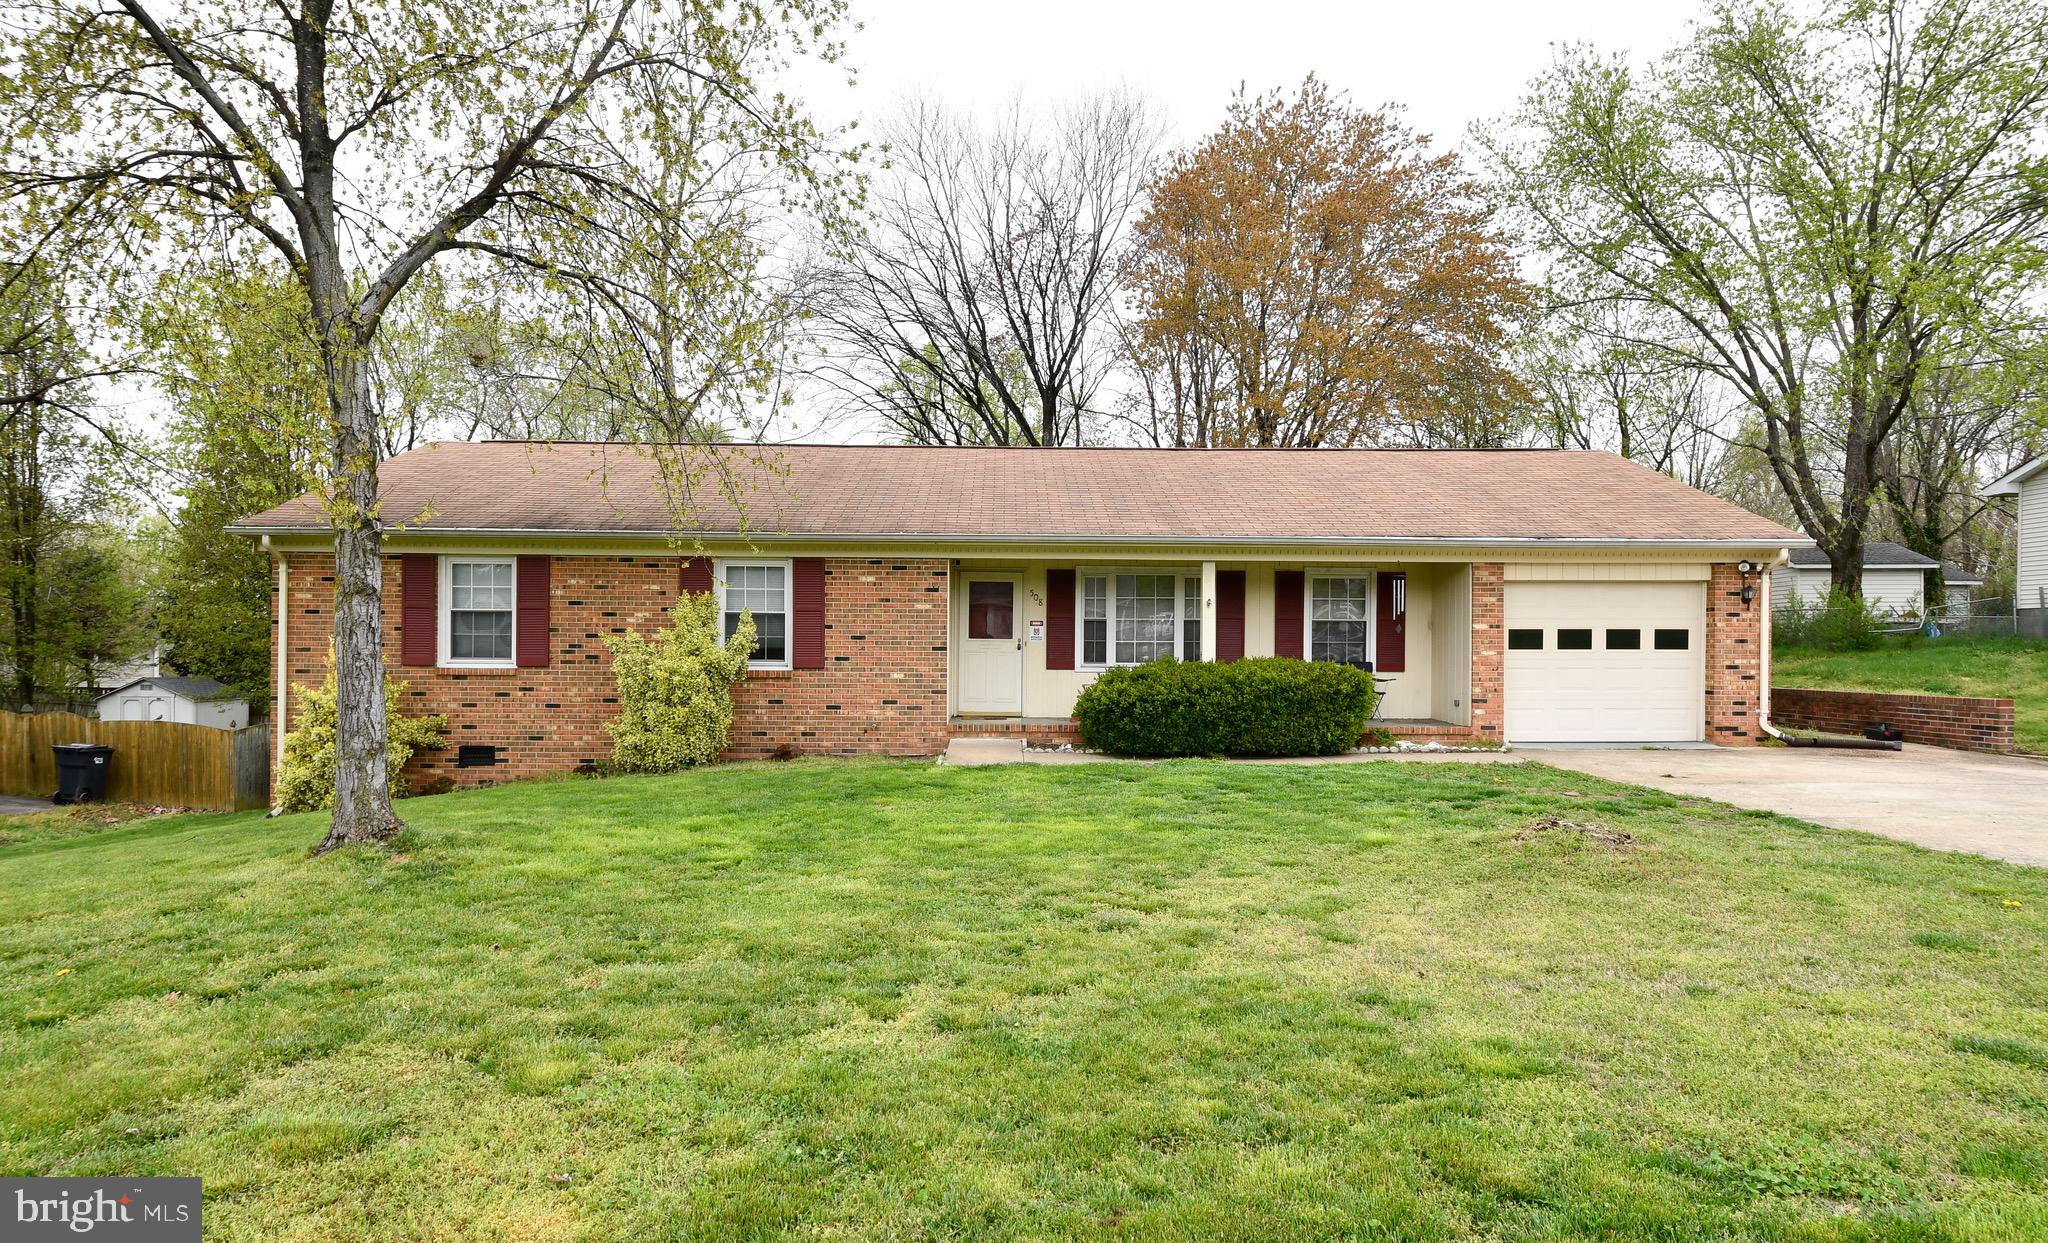 Stafford county brick rambler with an inviting front porch.  Hardwood floors throughout . Updated ki